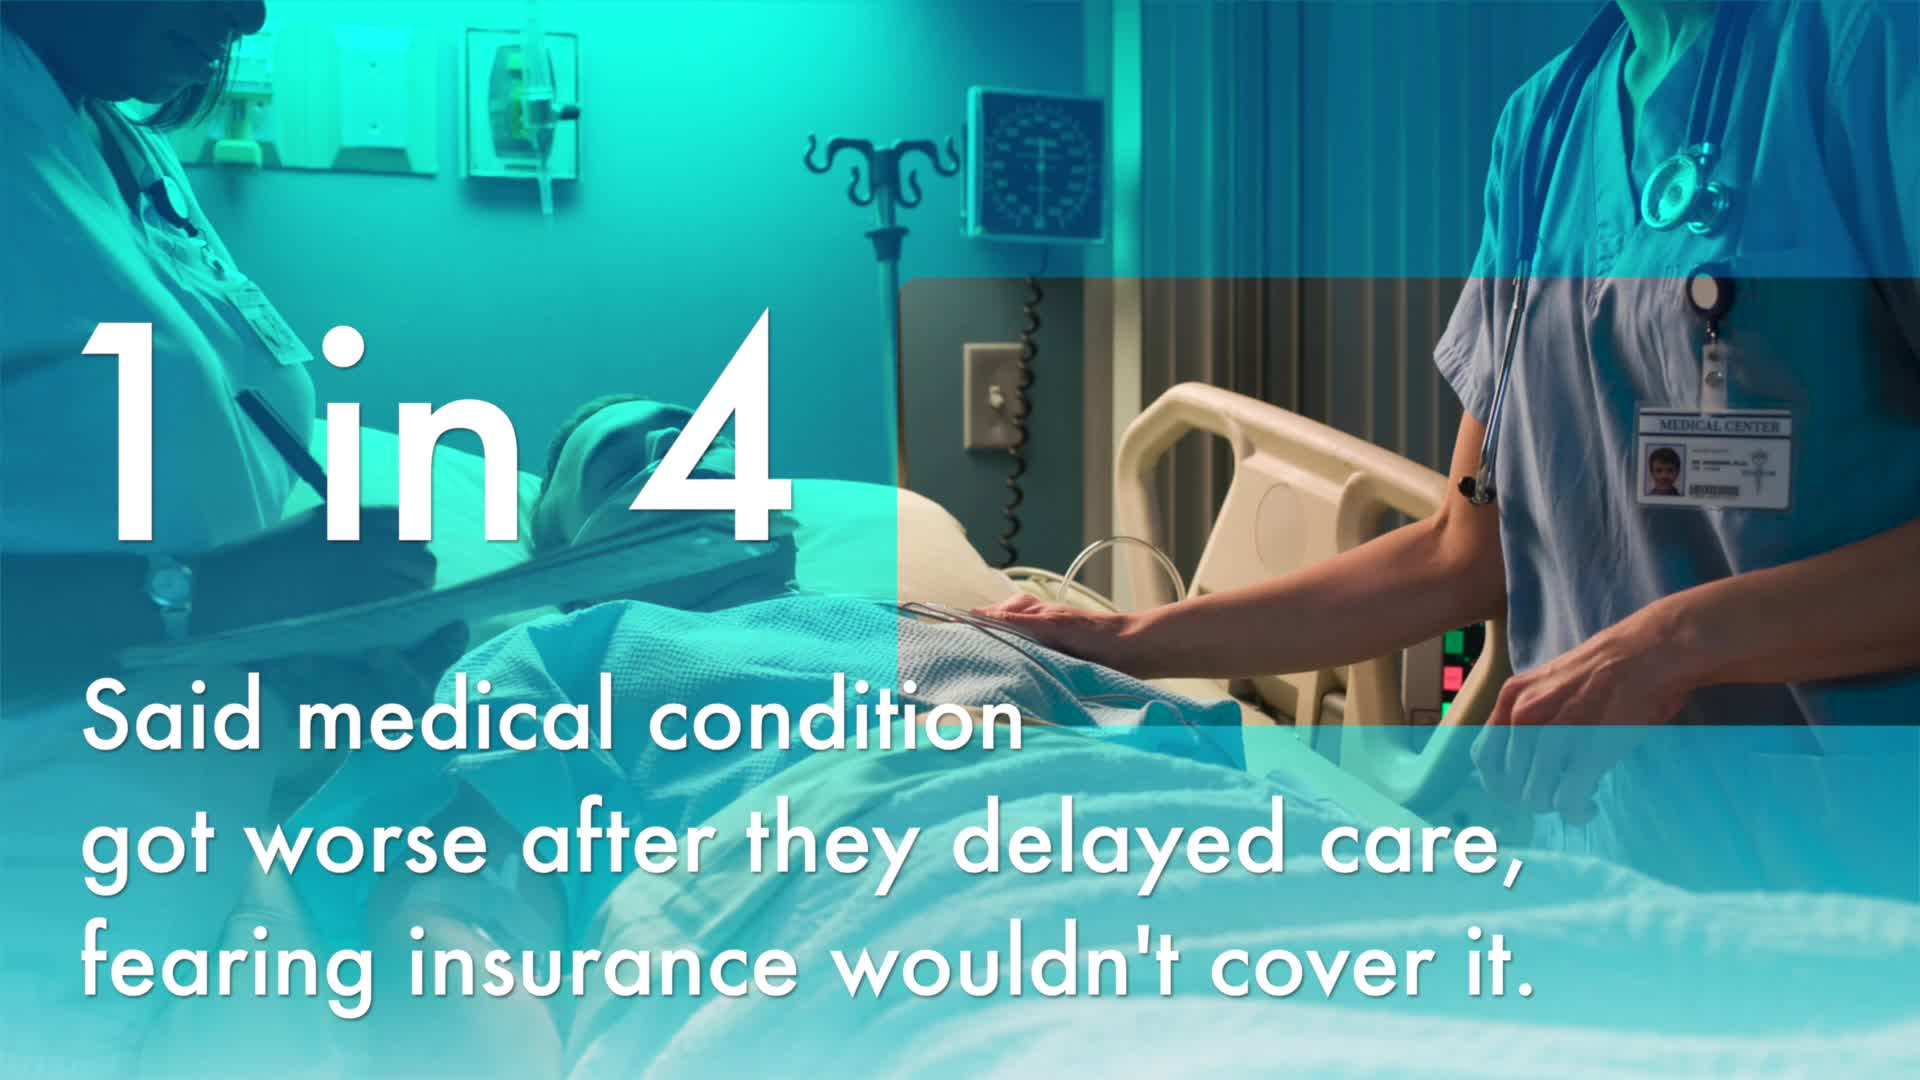 ACEP's president, Dr. Jay Kaplan says every American needs to carefully look at their health insurance policy to find out what it really covers in the event of a medical emergency.